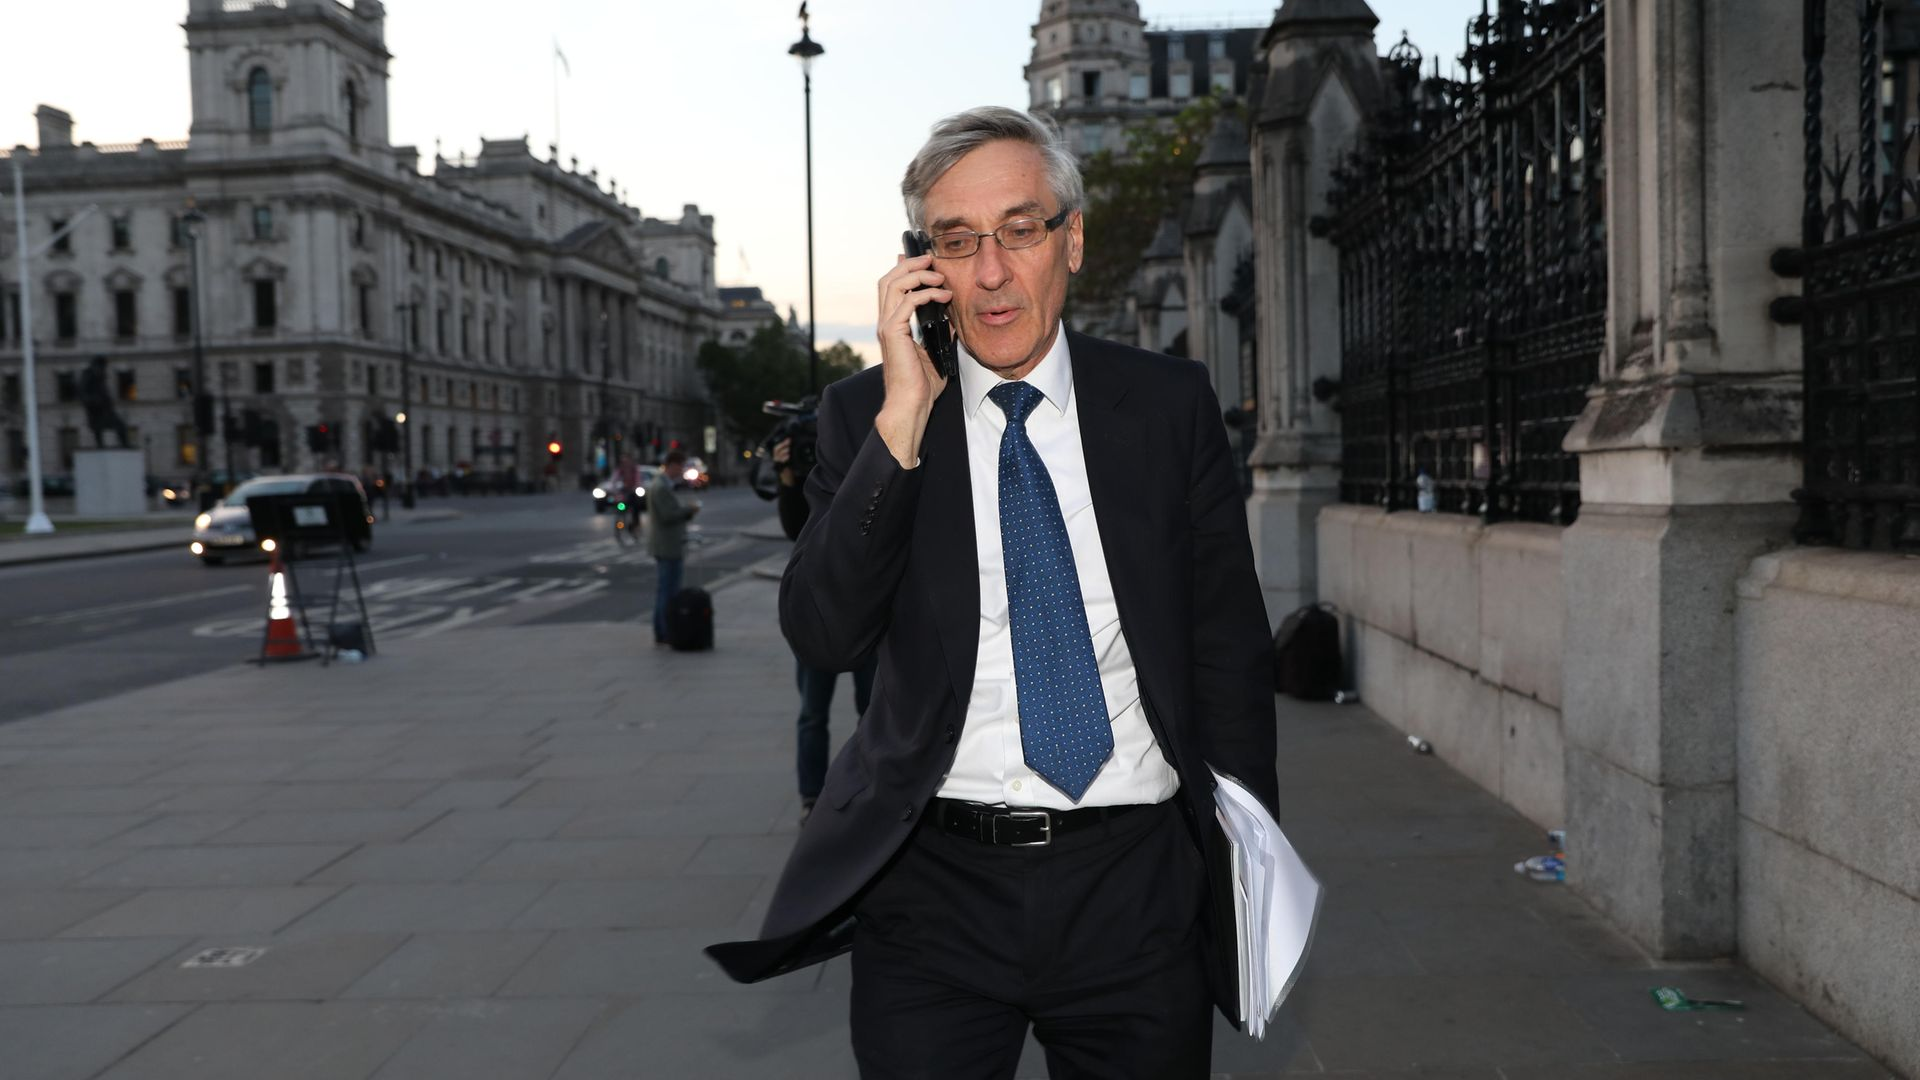 Conservative MP John Redwood leaves the Houses of Parliament in Westminster, London. - Credit: PA